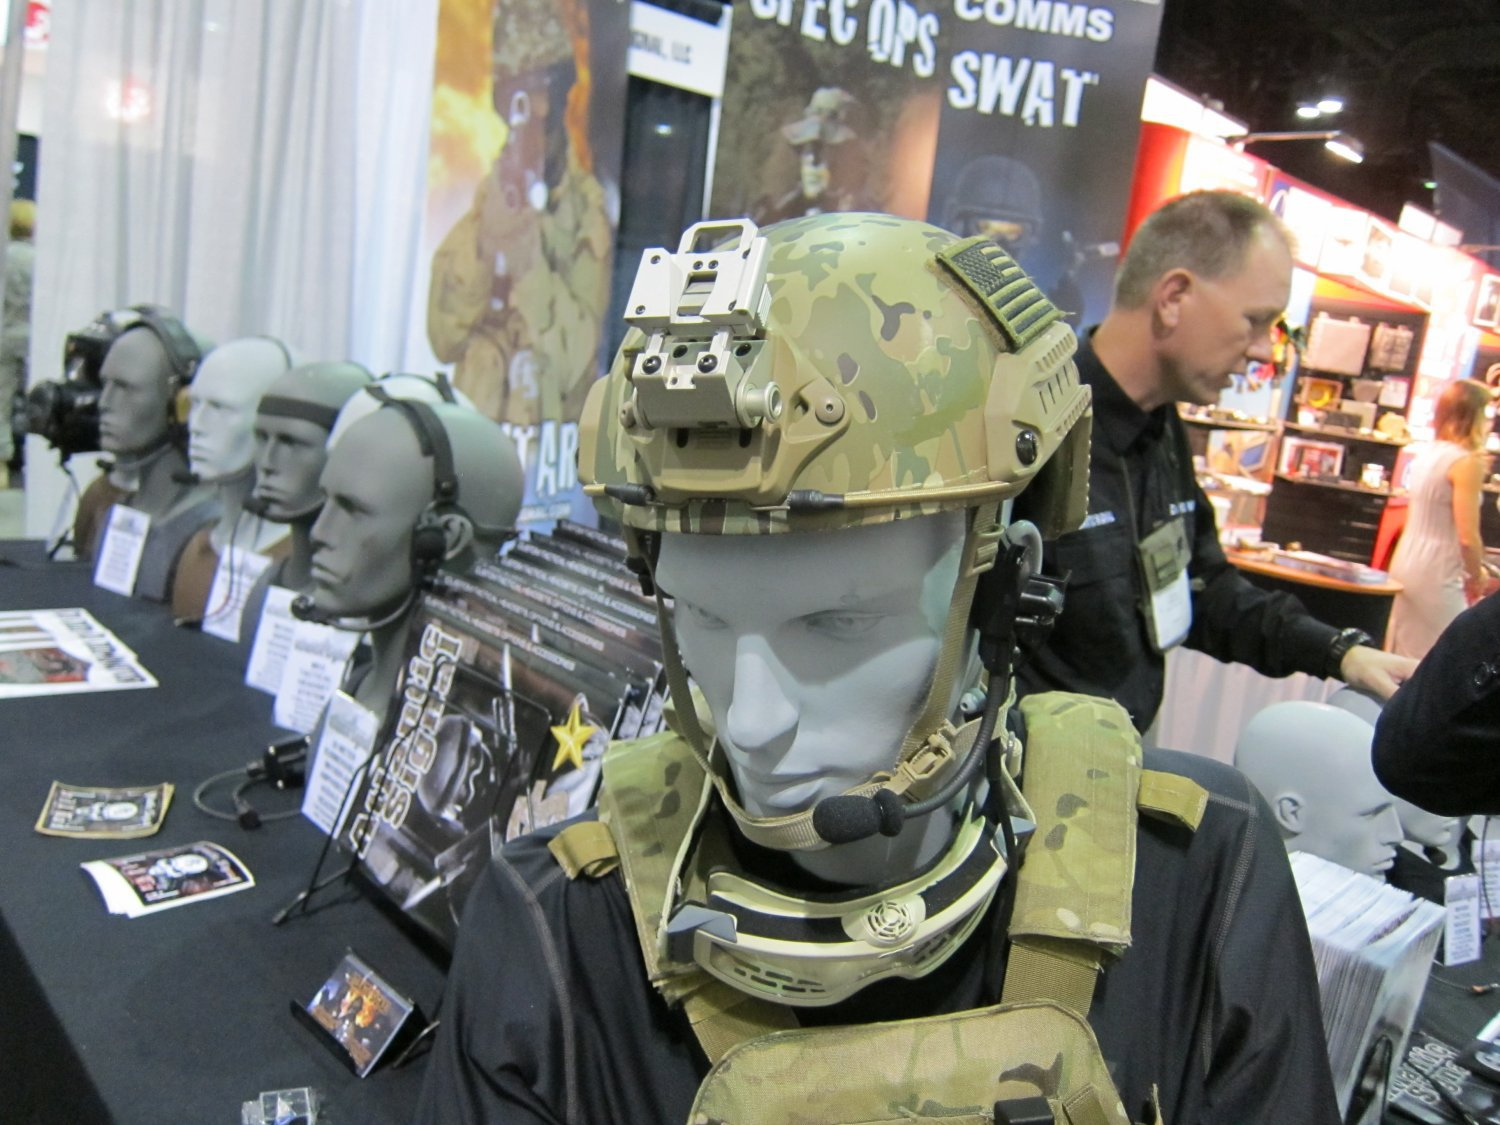 Atlantic Signal Dominator Waterproof Bone Conduction Hearing Pro Tactical Comms Headset and Ops Core SPECOPS Combat Helmet SOFIC 2011 7 <!  :en  >Ops Core FAST Ballistic Helmet (Crye MultiCam Camo Pattern?) Military Combat Helmet with FAST ARC Accessory Rail Connectors and Head Loc Chinstrap Retention System Going Operational in Afghanistan with U.S. Army Special Forces: FAST Helmet Demo Video, and Contour HD Tactical Helmet Cam (Camera) Photos! <!  :  >